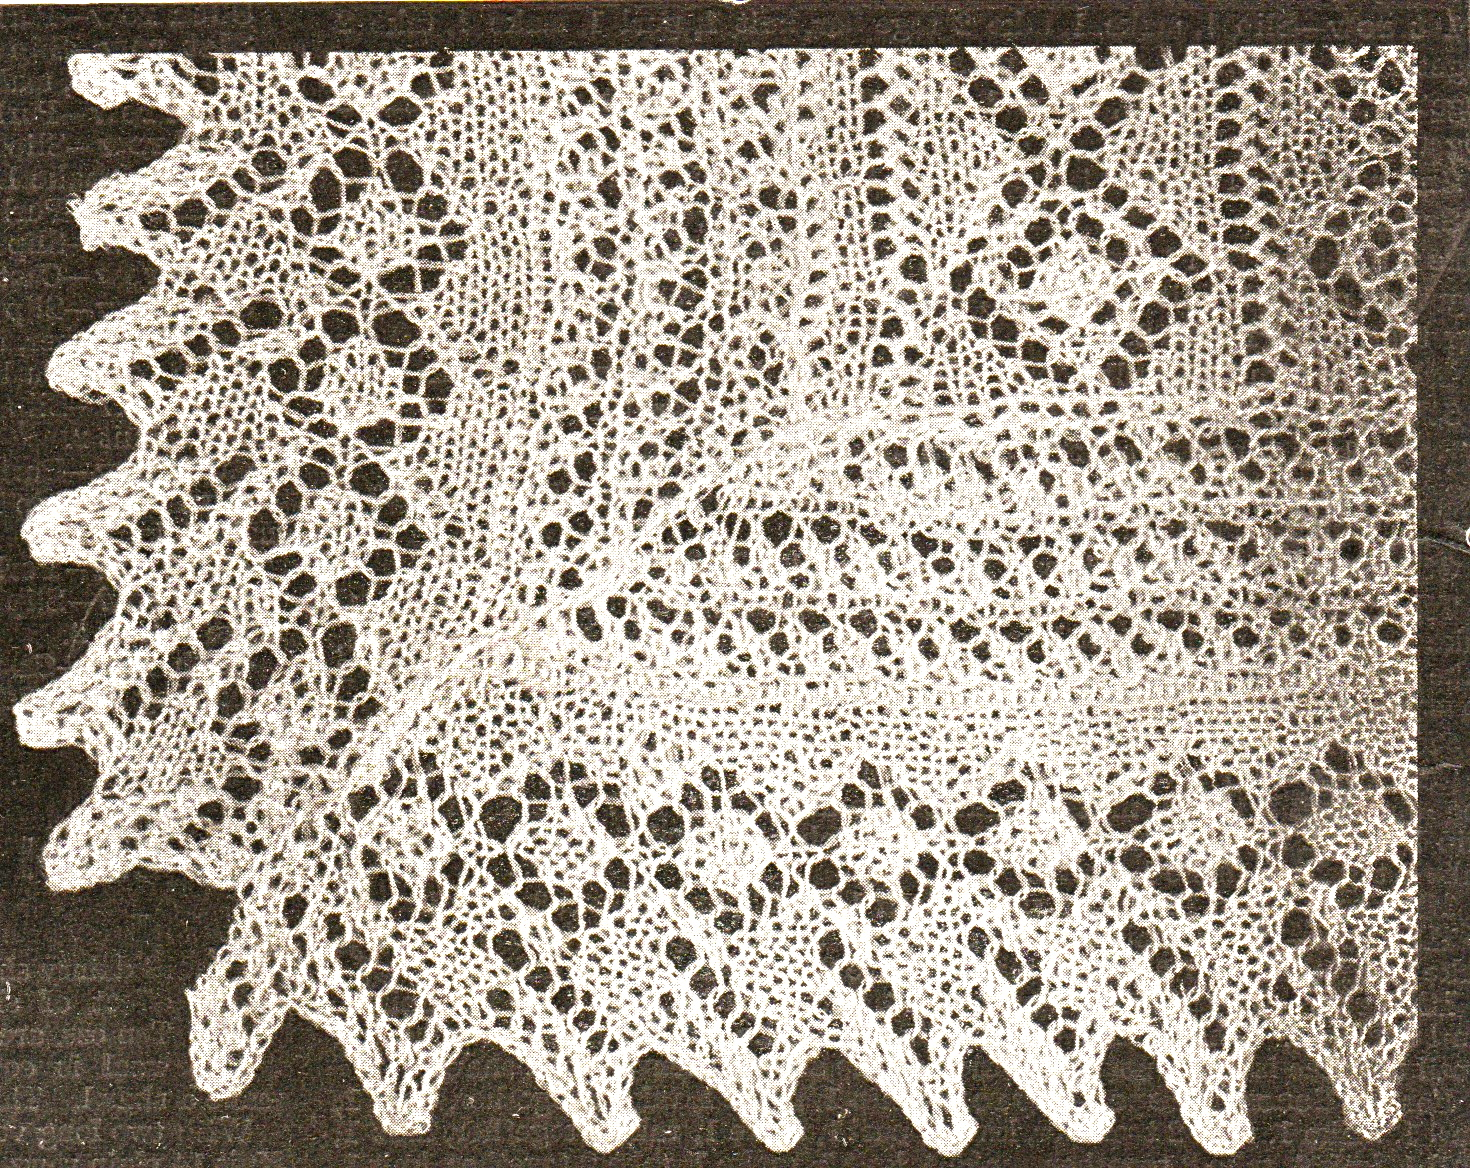 Vintage Baby christening shawls knitting patterns - Vintage patterns ...